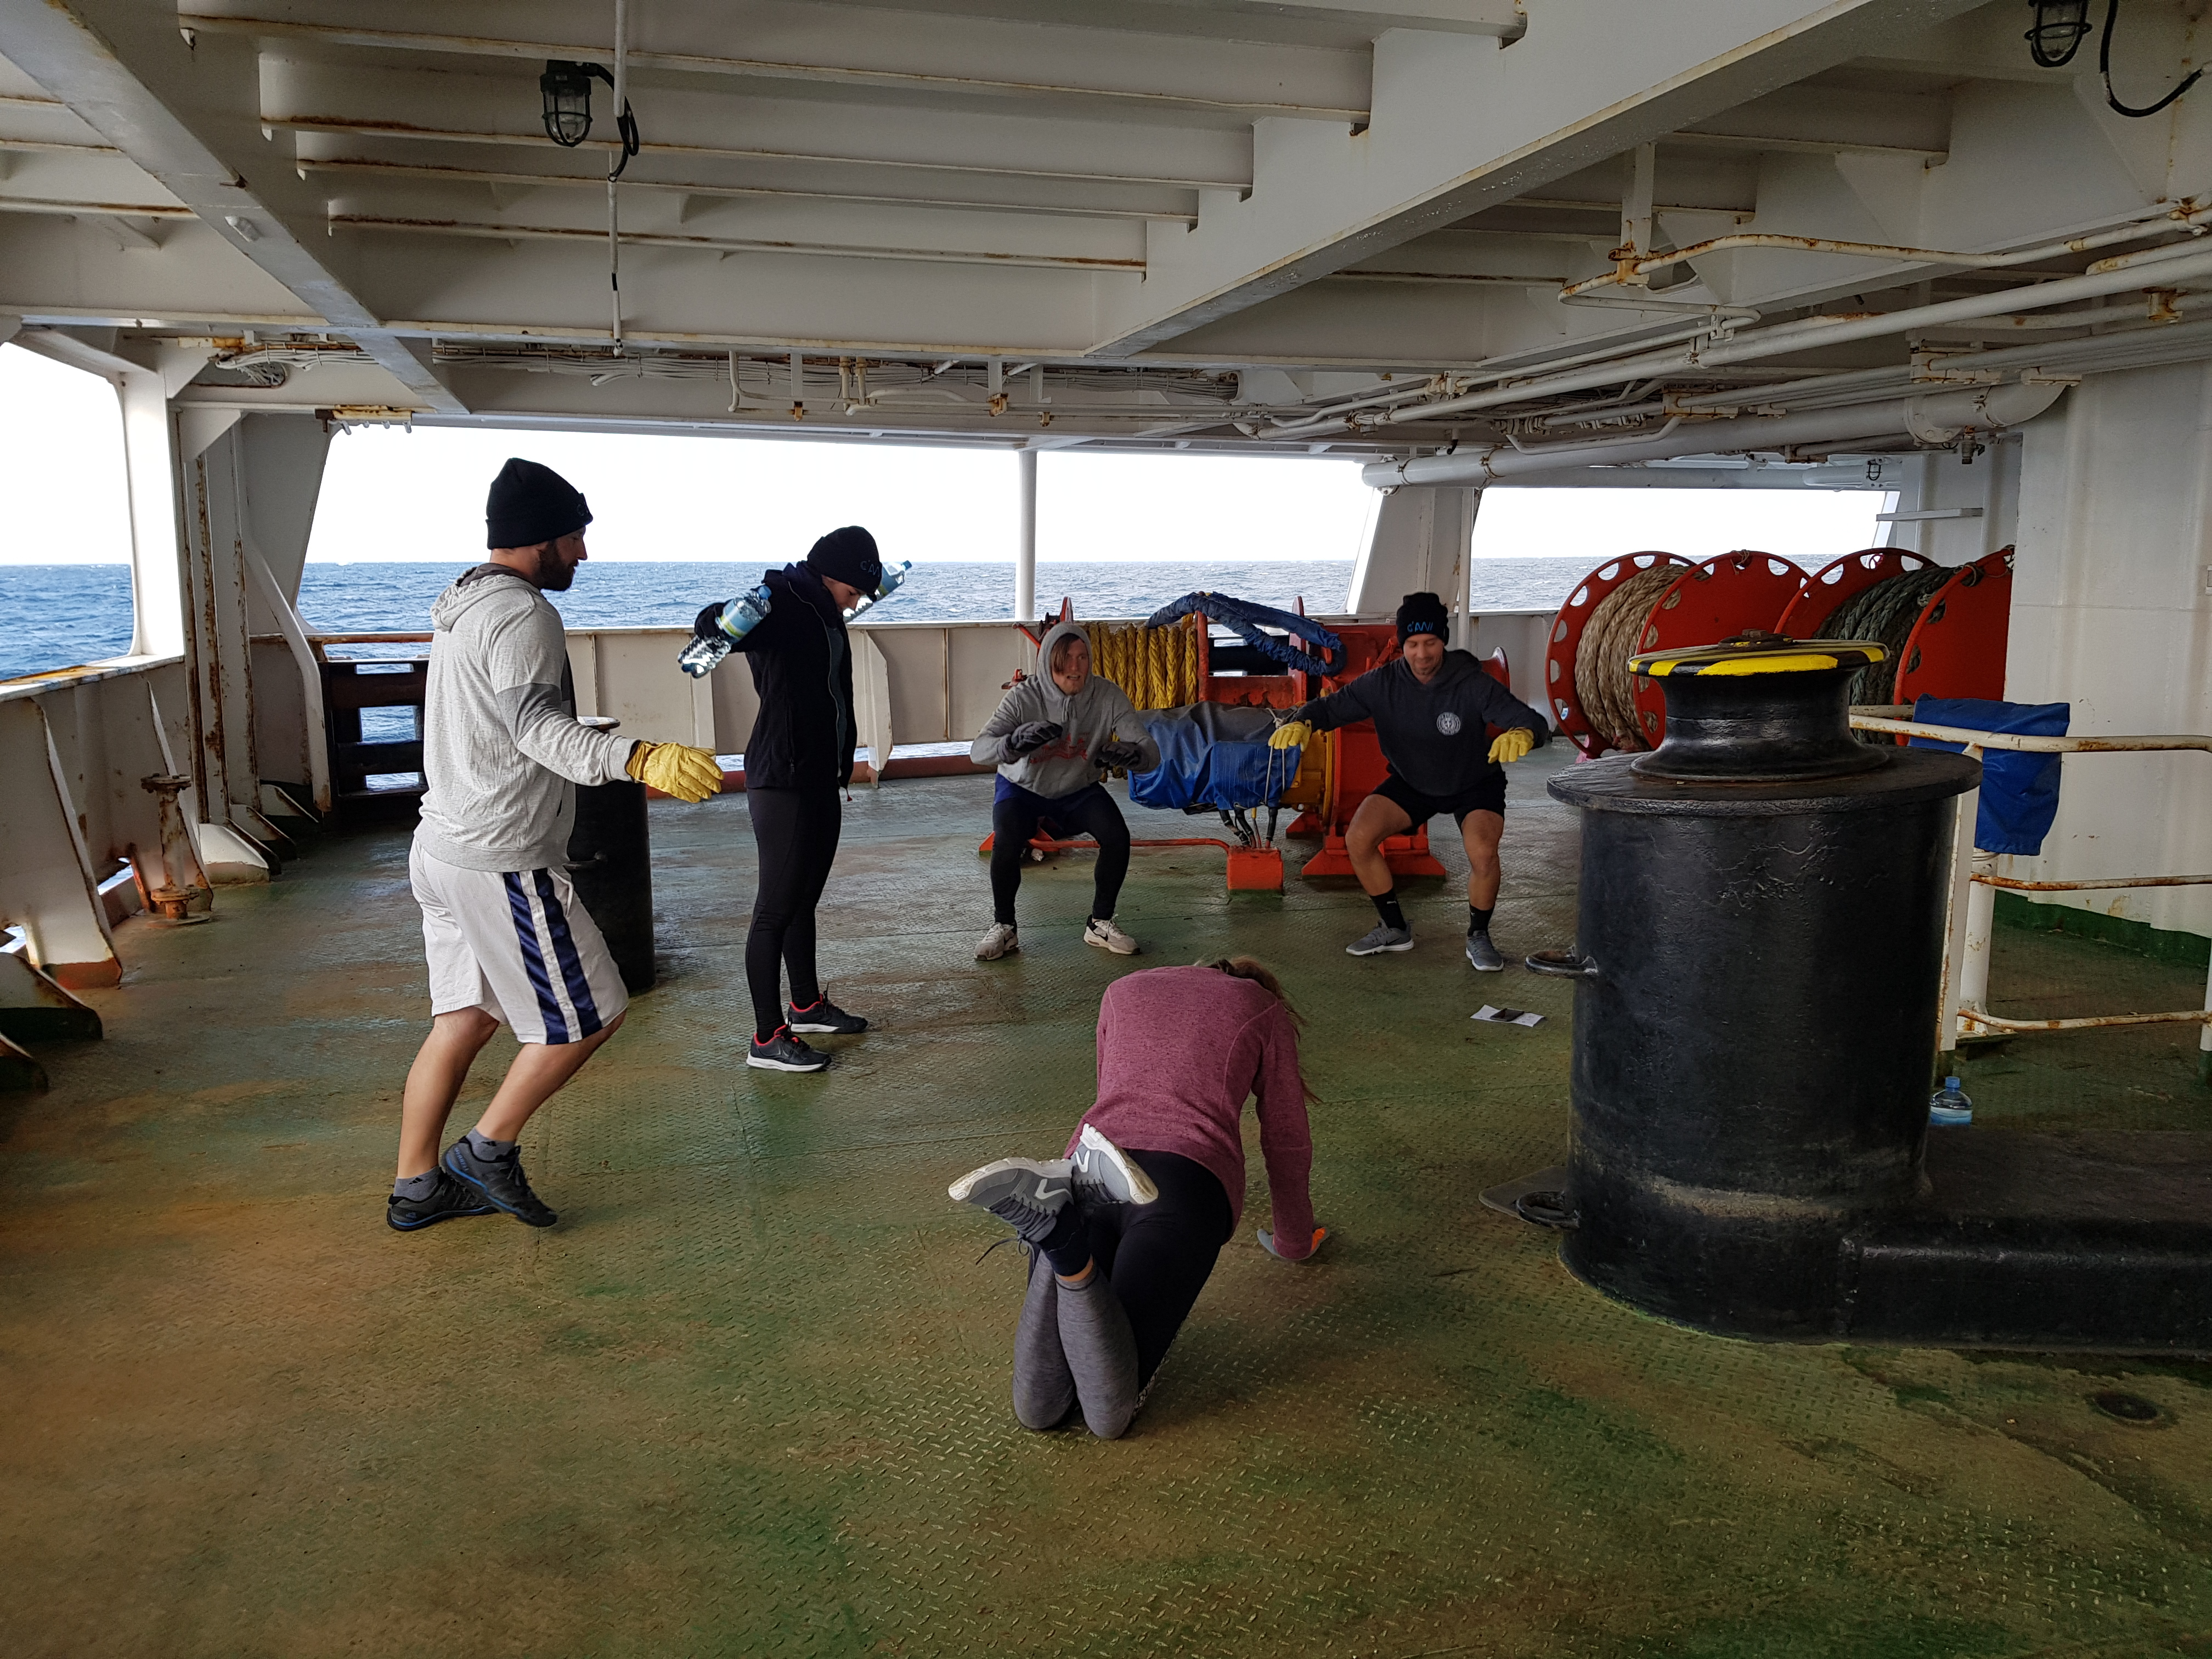 Crossfit on the ship deck